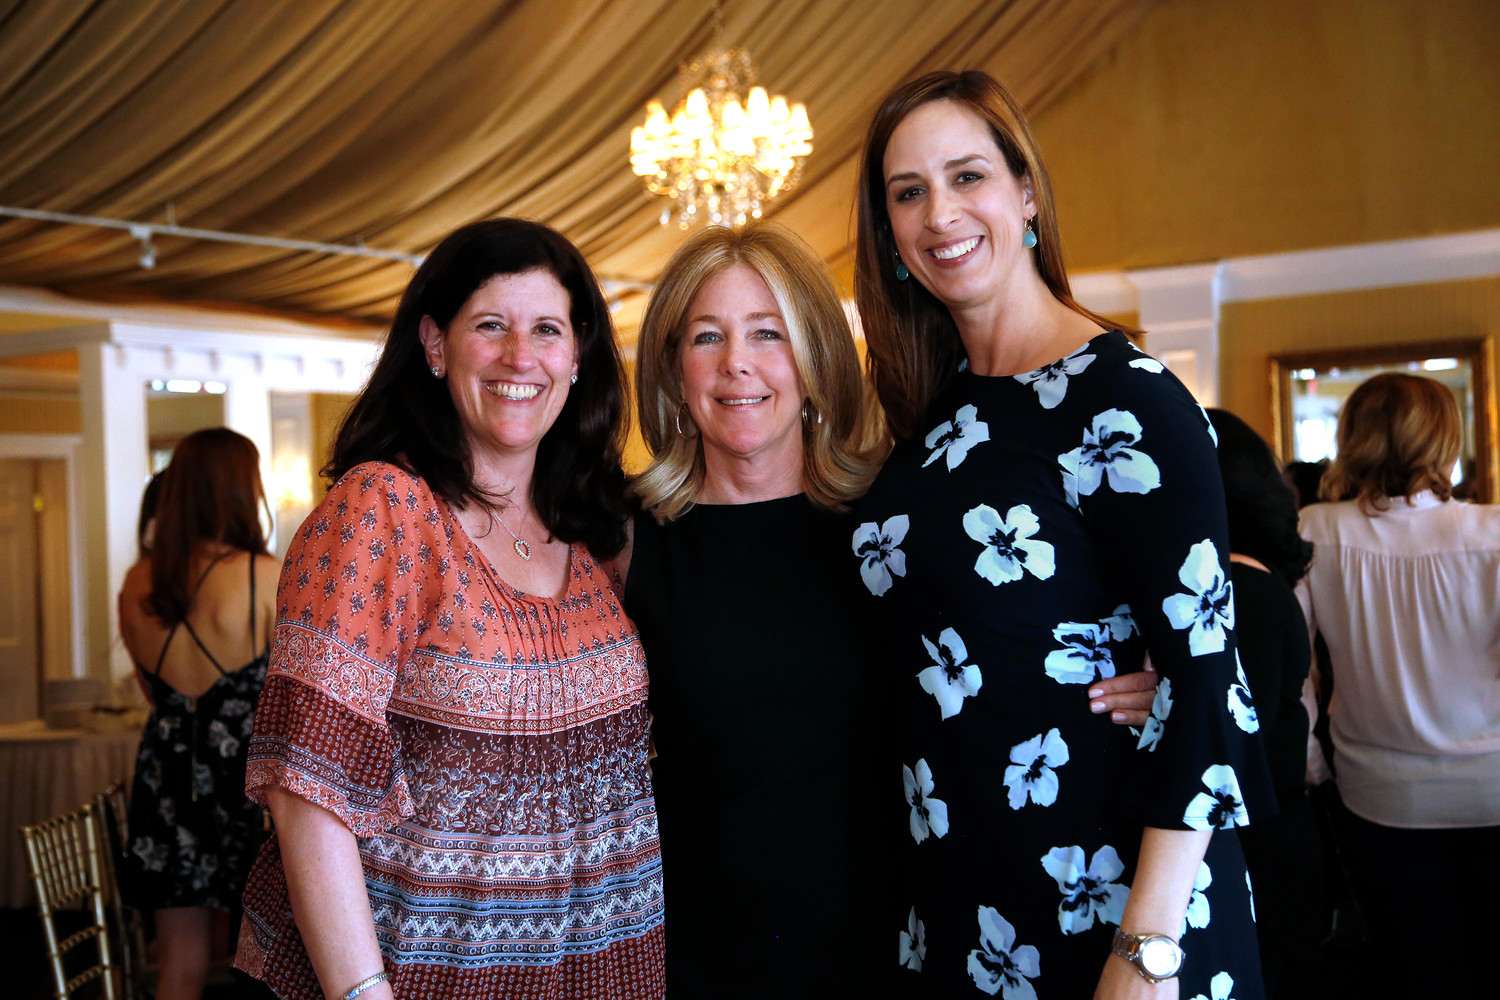 Deputy Mayor Kathy Baxley, left, vice president of the coalition, with co-presidents Peg McDonald and Erin O'Sullivan.